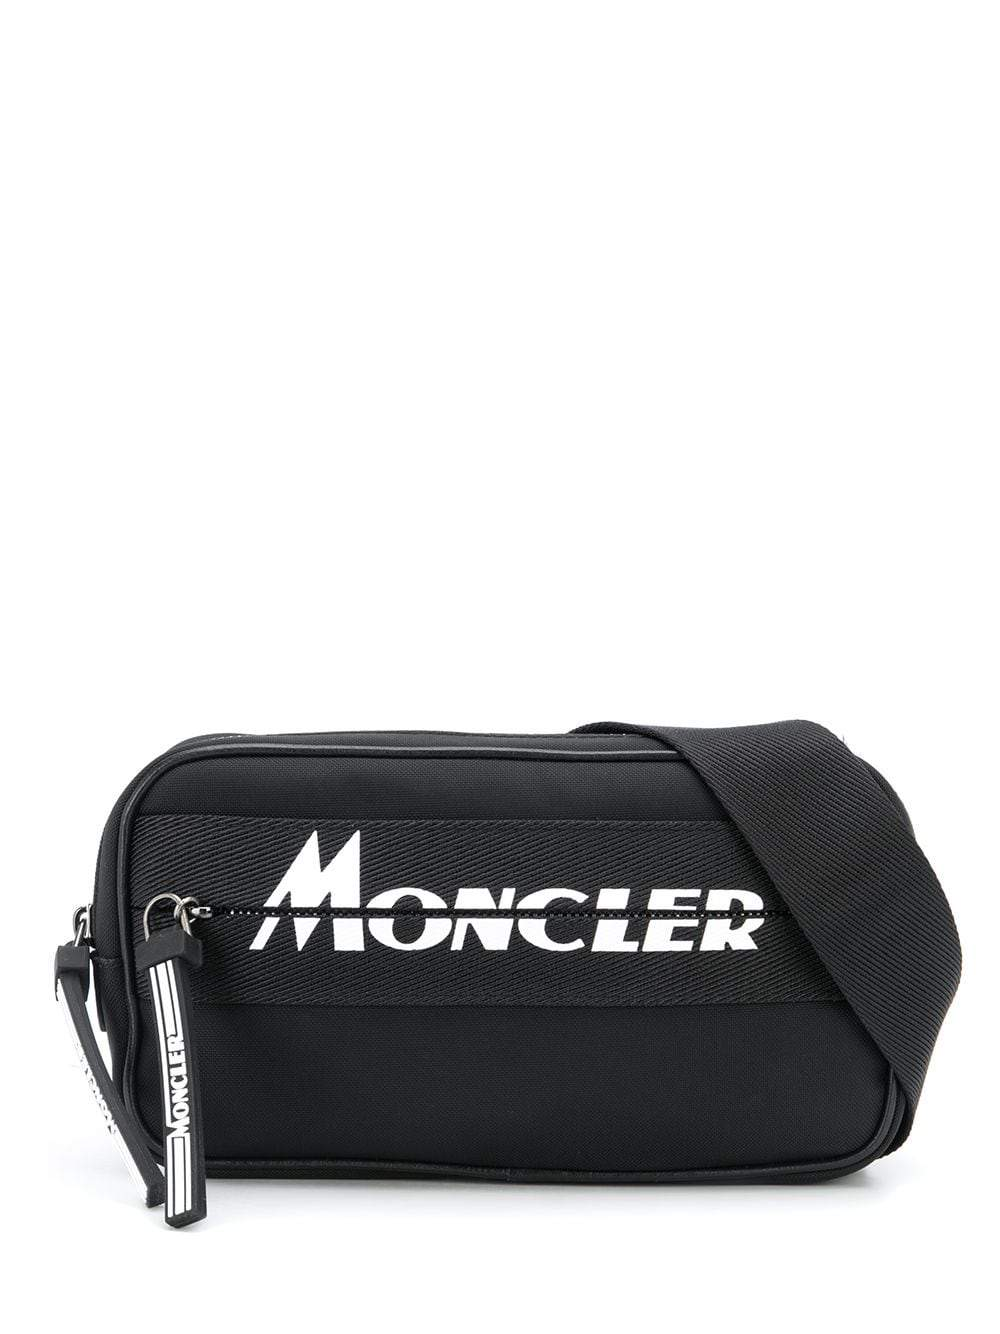 MONCLER logo belt bag black